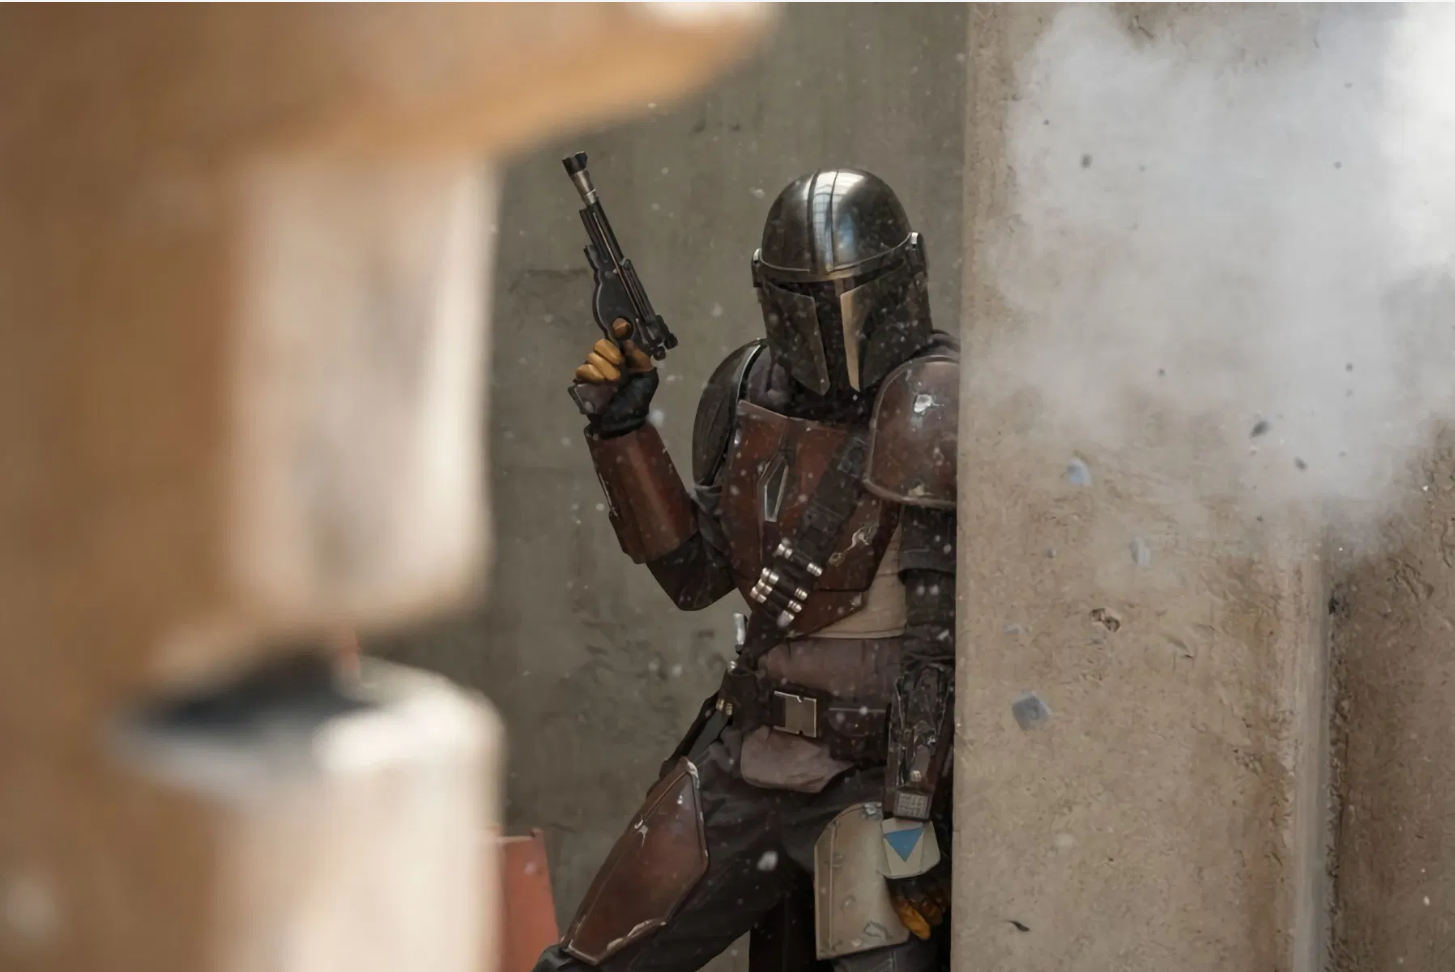 The Mandalorian mid-shoot off leaning behind a wall with pistol in hand.